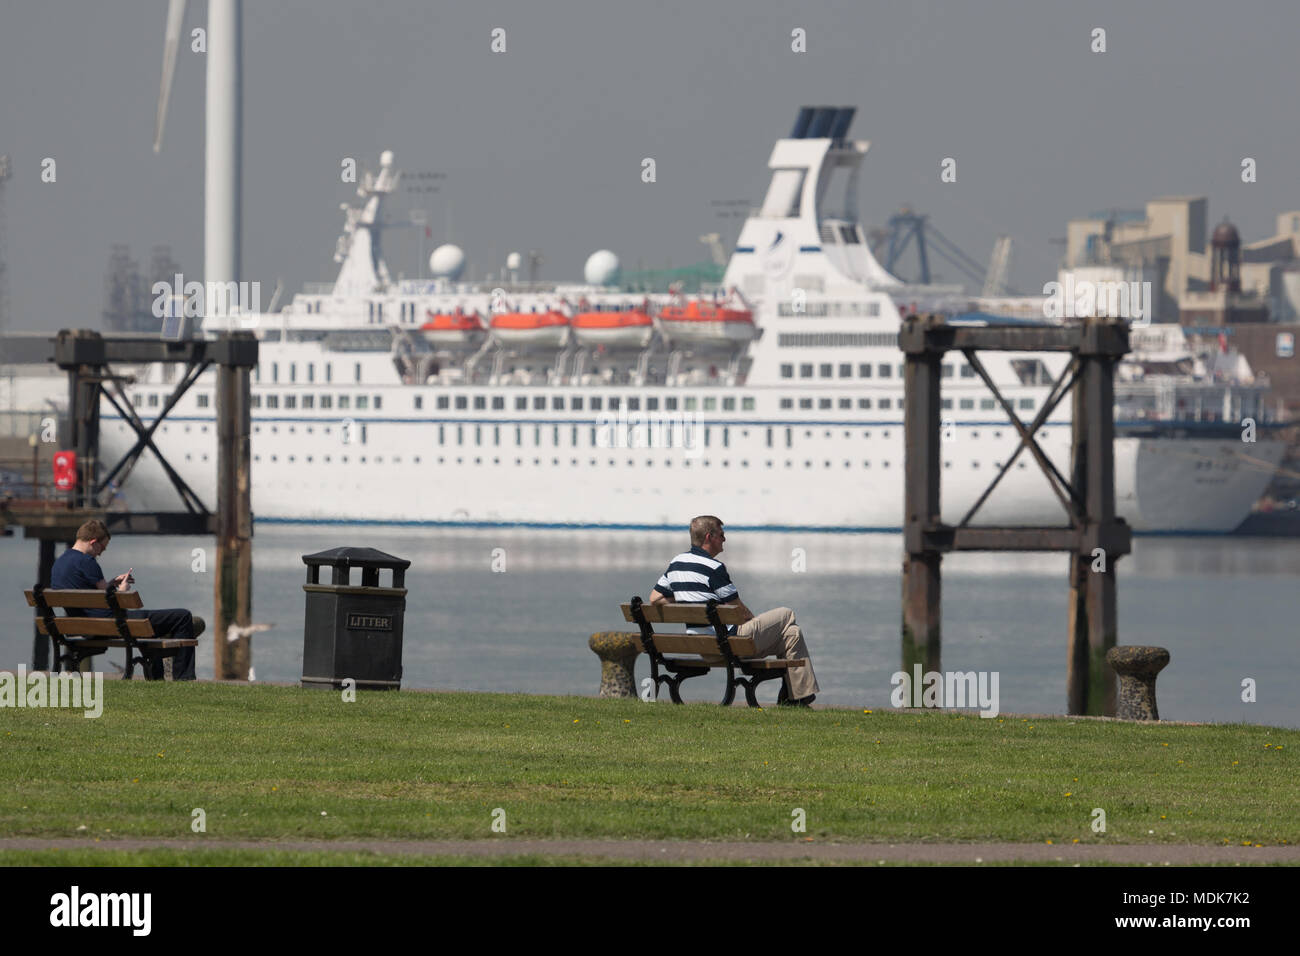 Gravesend, United Kingdom. 20th April, 2018. People relax at Gravesend Prom with cruise ship Astor pictured across the Thames at Tilbury. Gravesend in Kent is enjoying a baking hot day with high temperatures and bright sunshine. Gravesend often records the highest temperature of anywhere in the country. Rob Powell/Alamy Live News - Stock Image